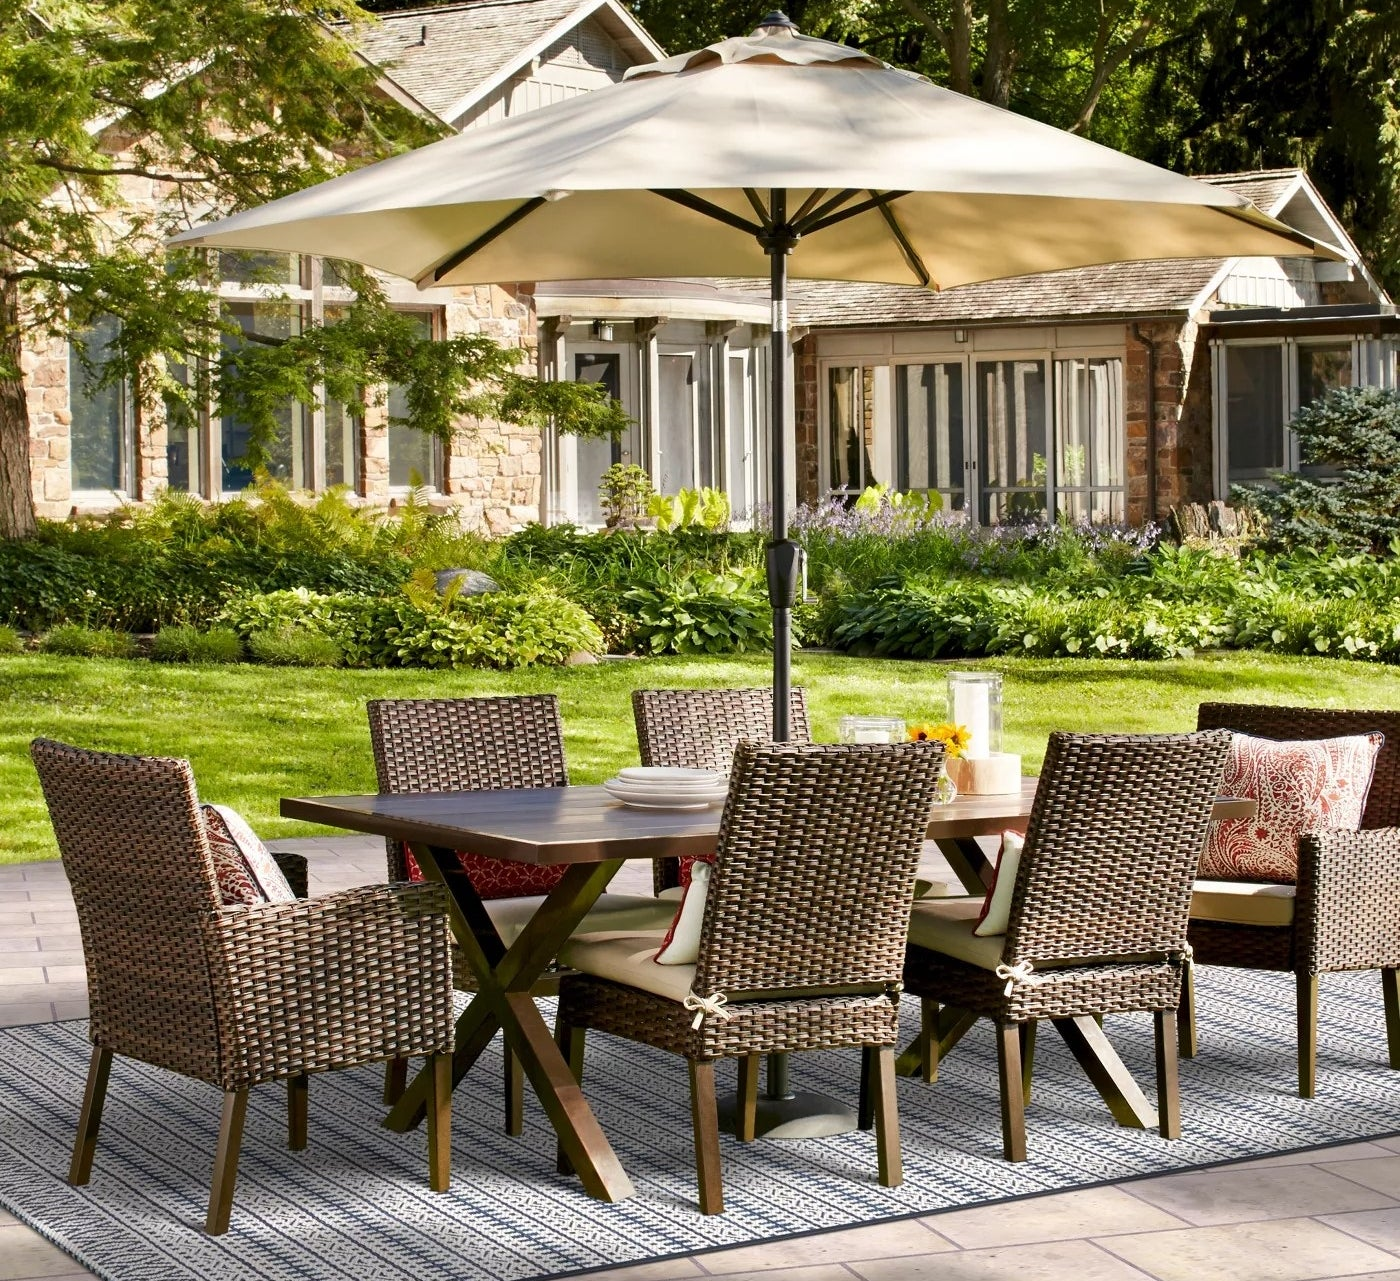 The wicker dining chairs with tan cushions